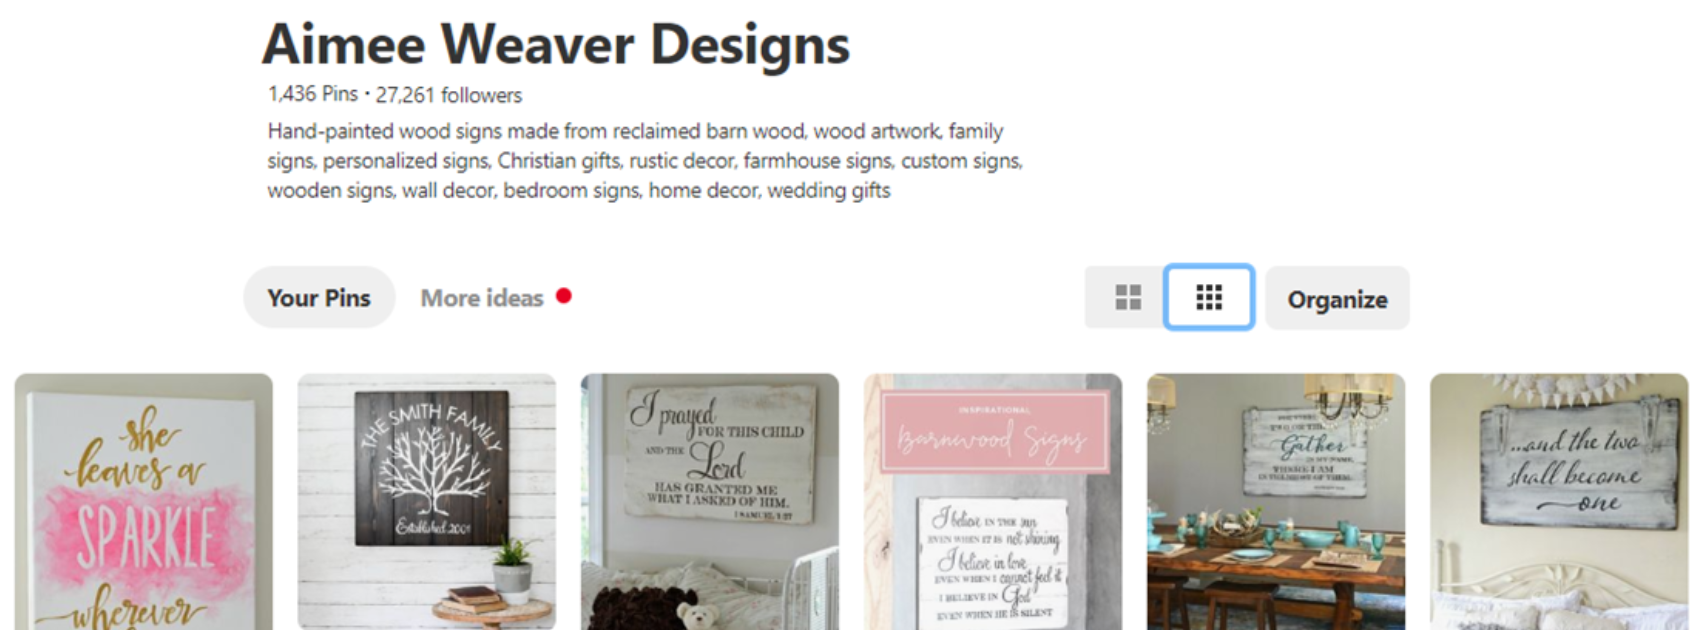 My favorite Pinterest boards